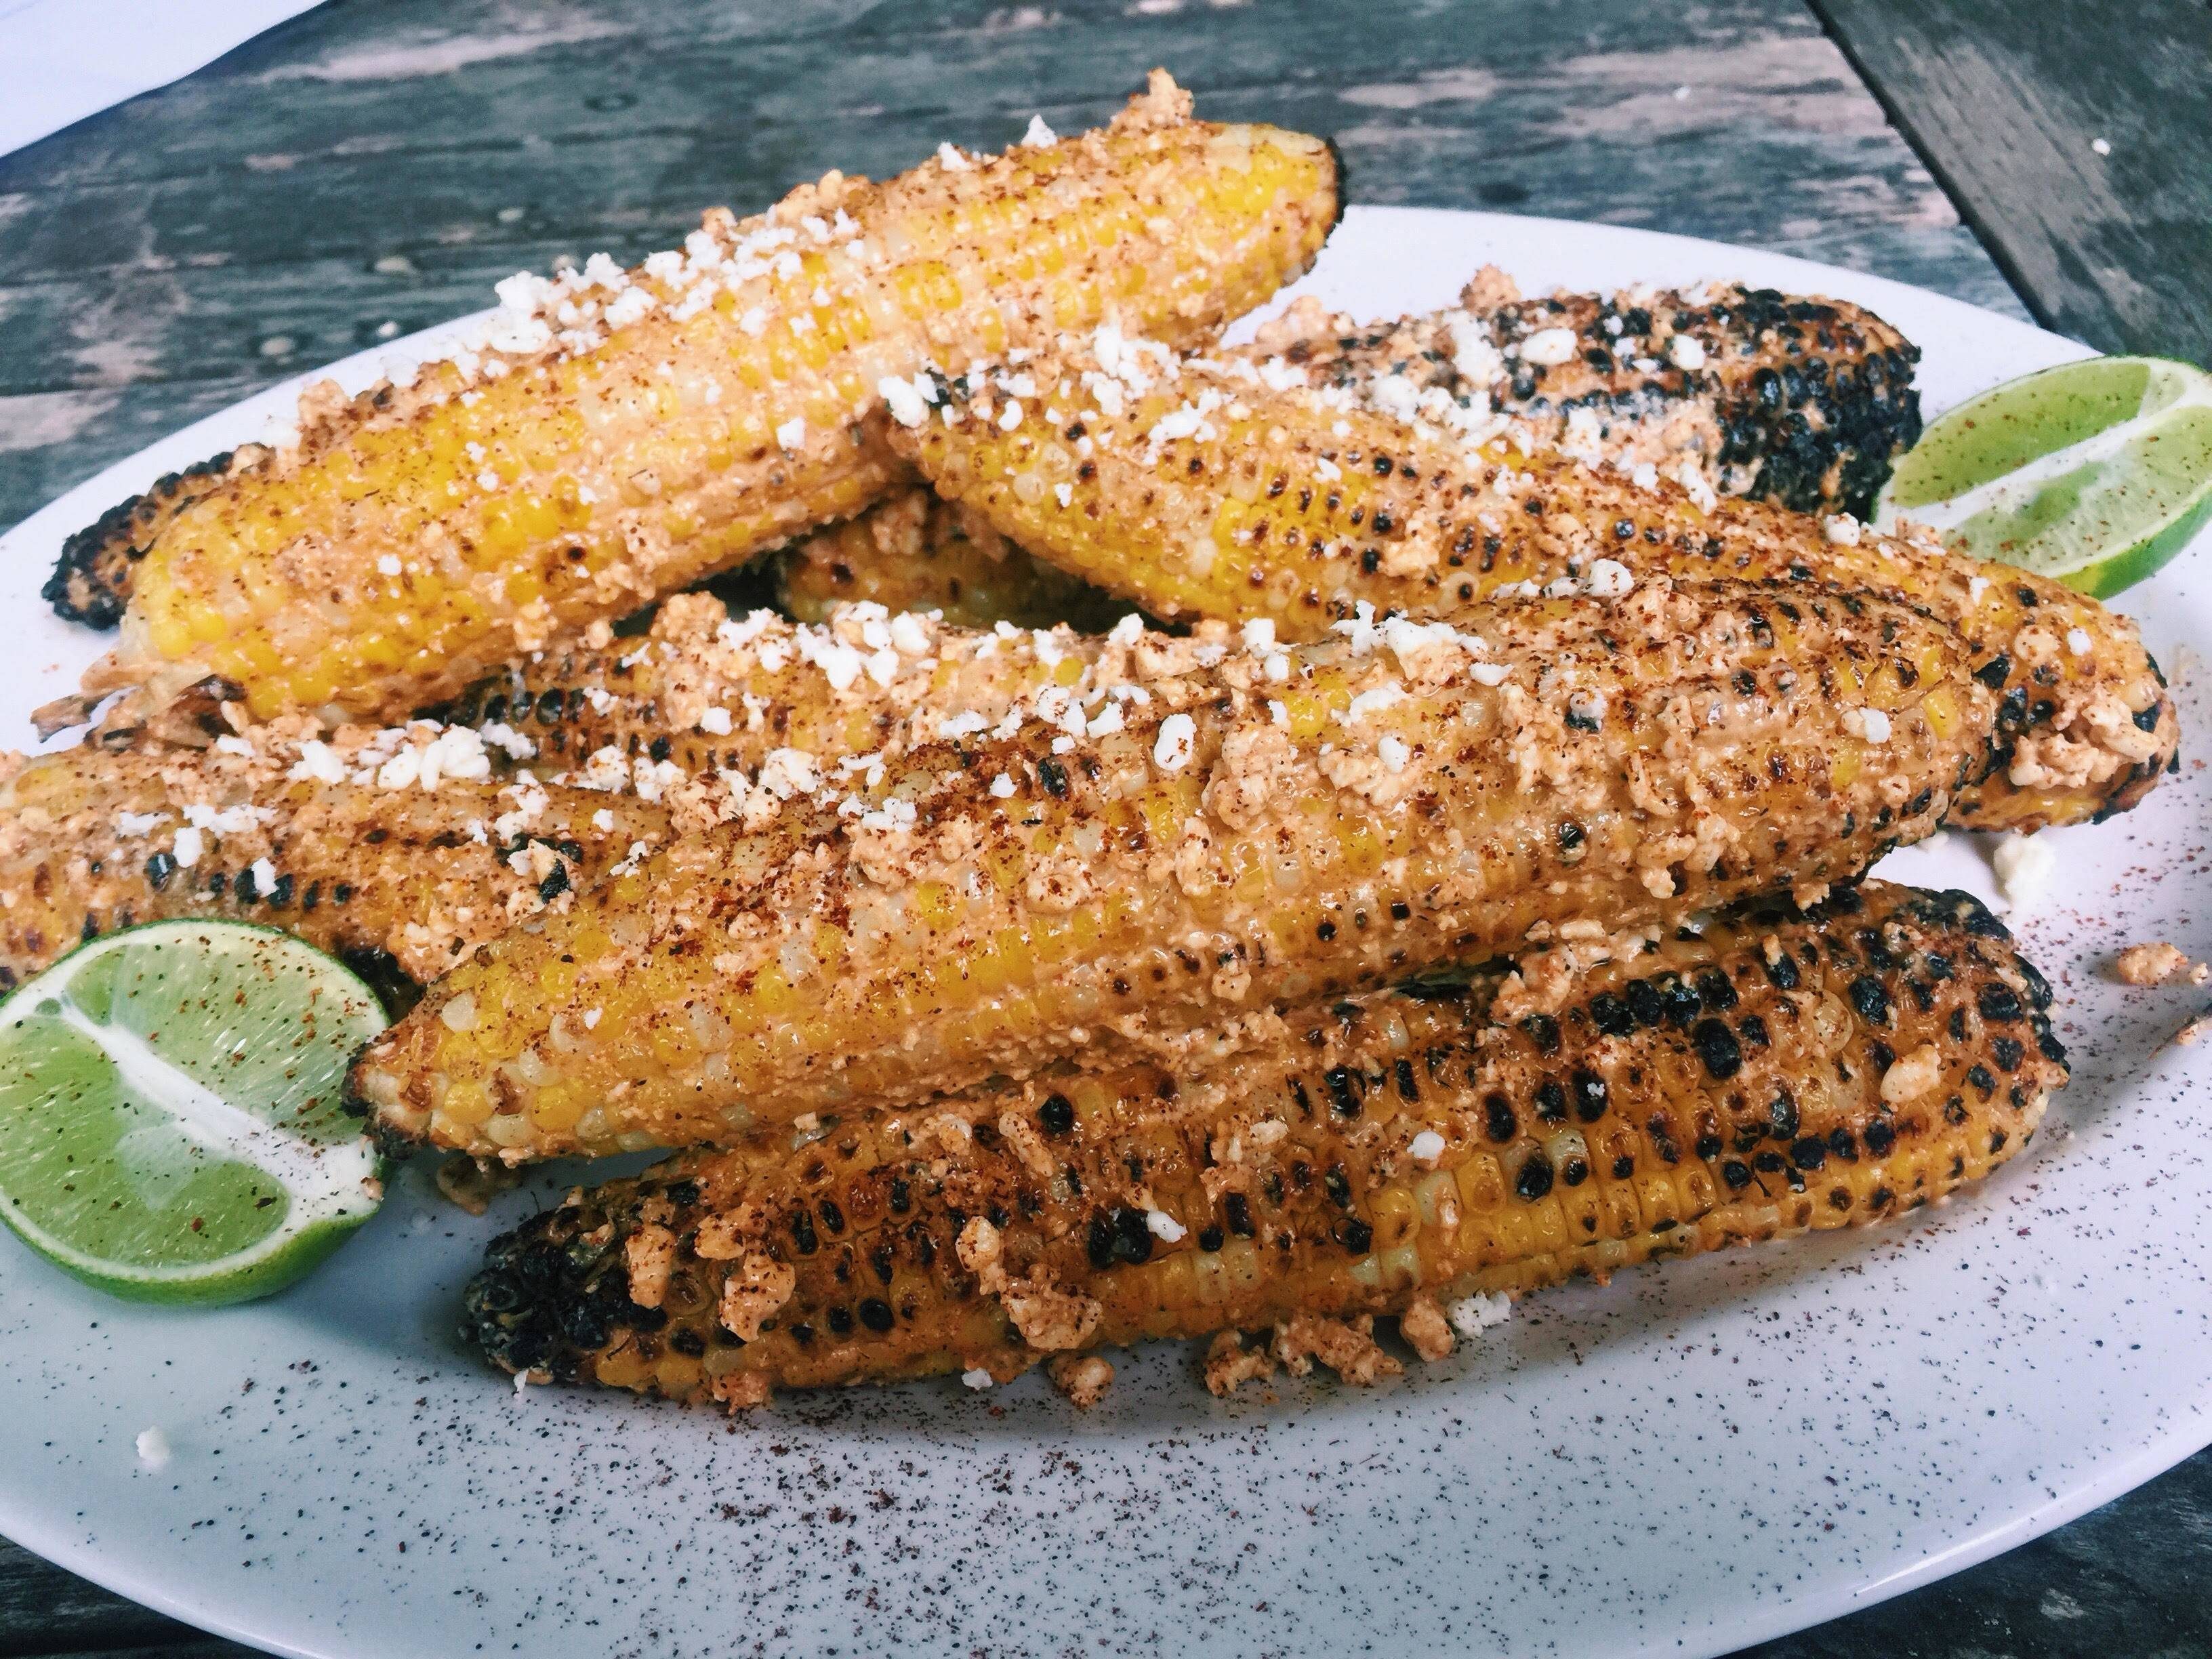 Mexican grilled corn is known as elotes in Mexico. South of the border you buy it from street vendors, but try it yourself at home.